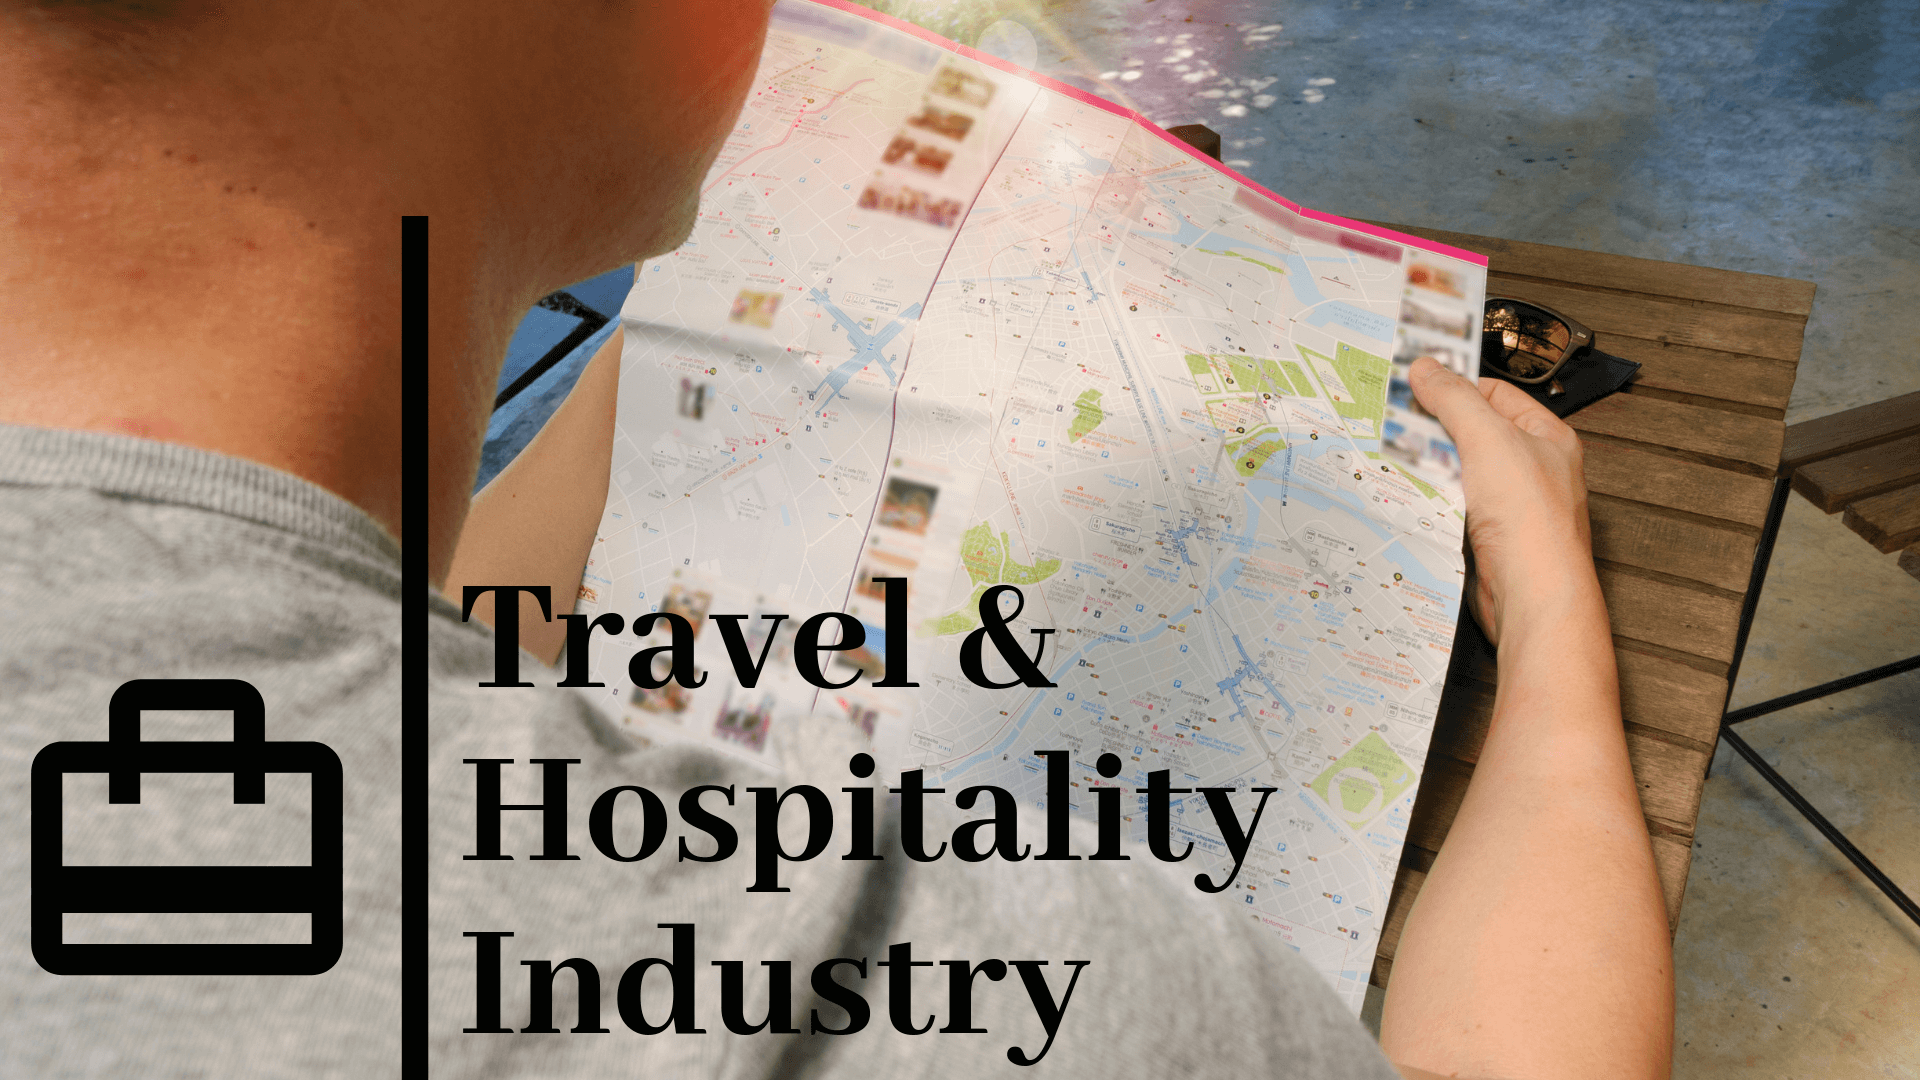 Travel TRooTech Business Solutions